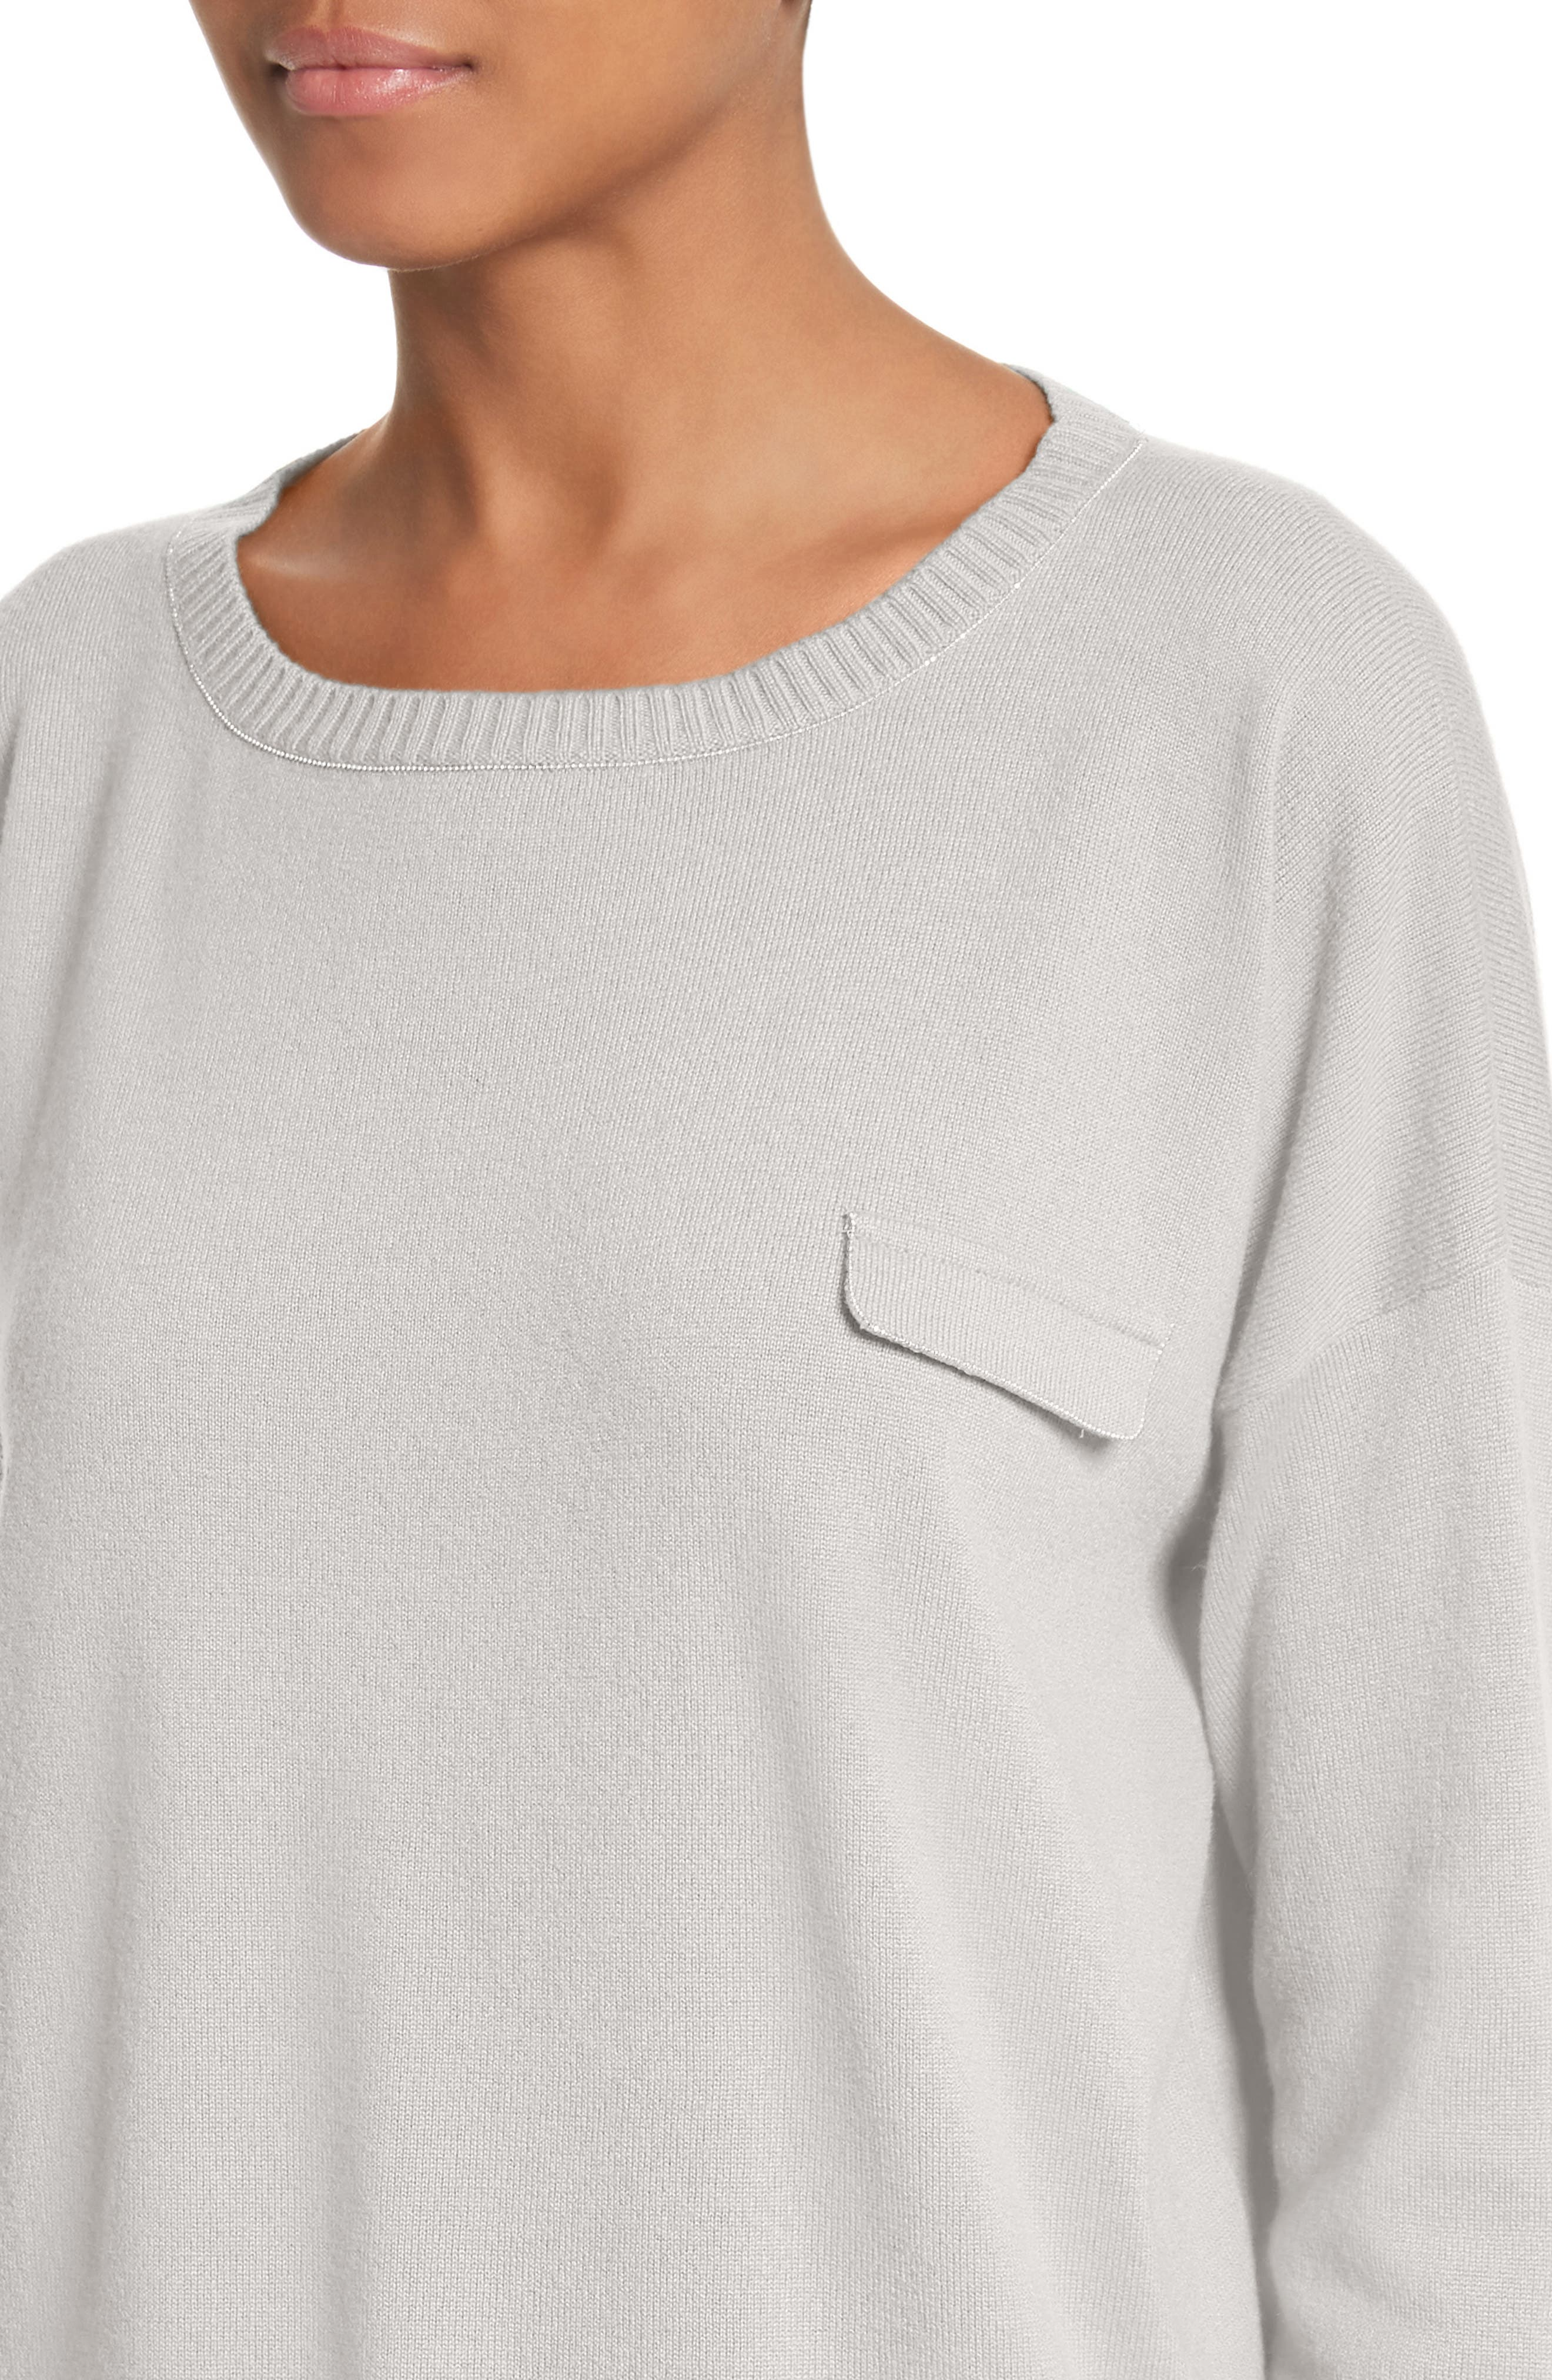 Beaded Cashmere Sweater,                             Alternate thumbnail 4, color,                             050